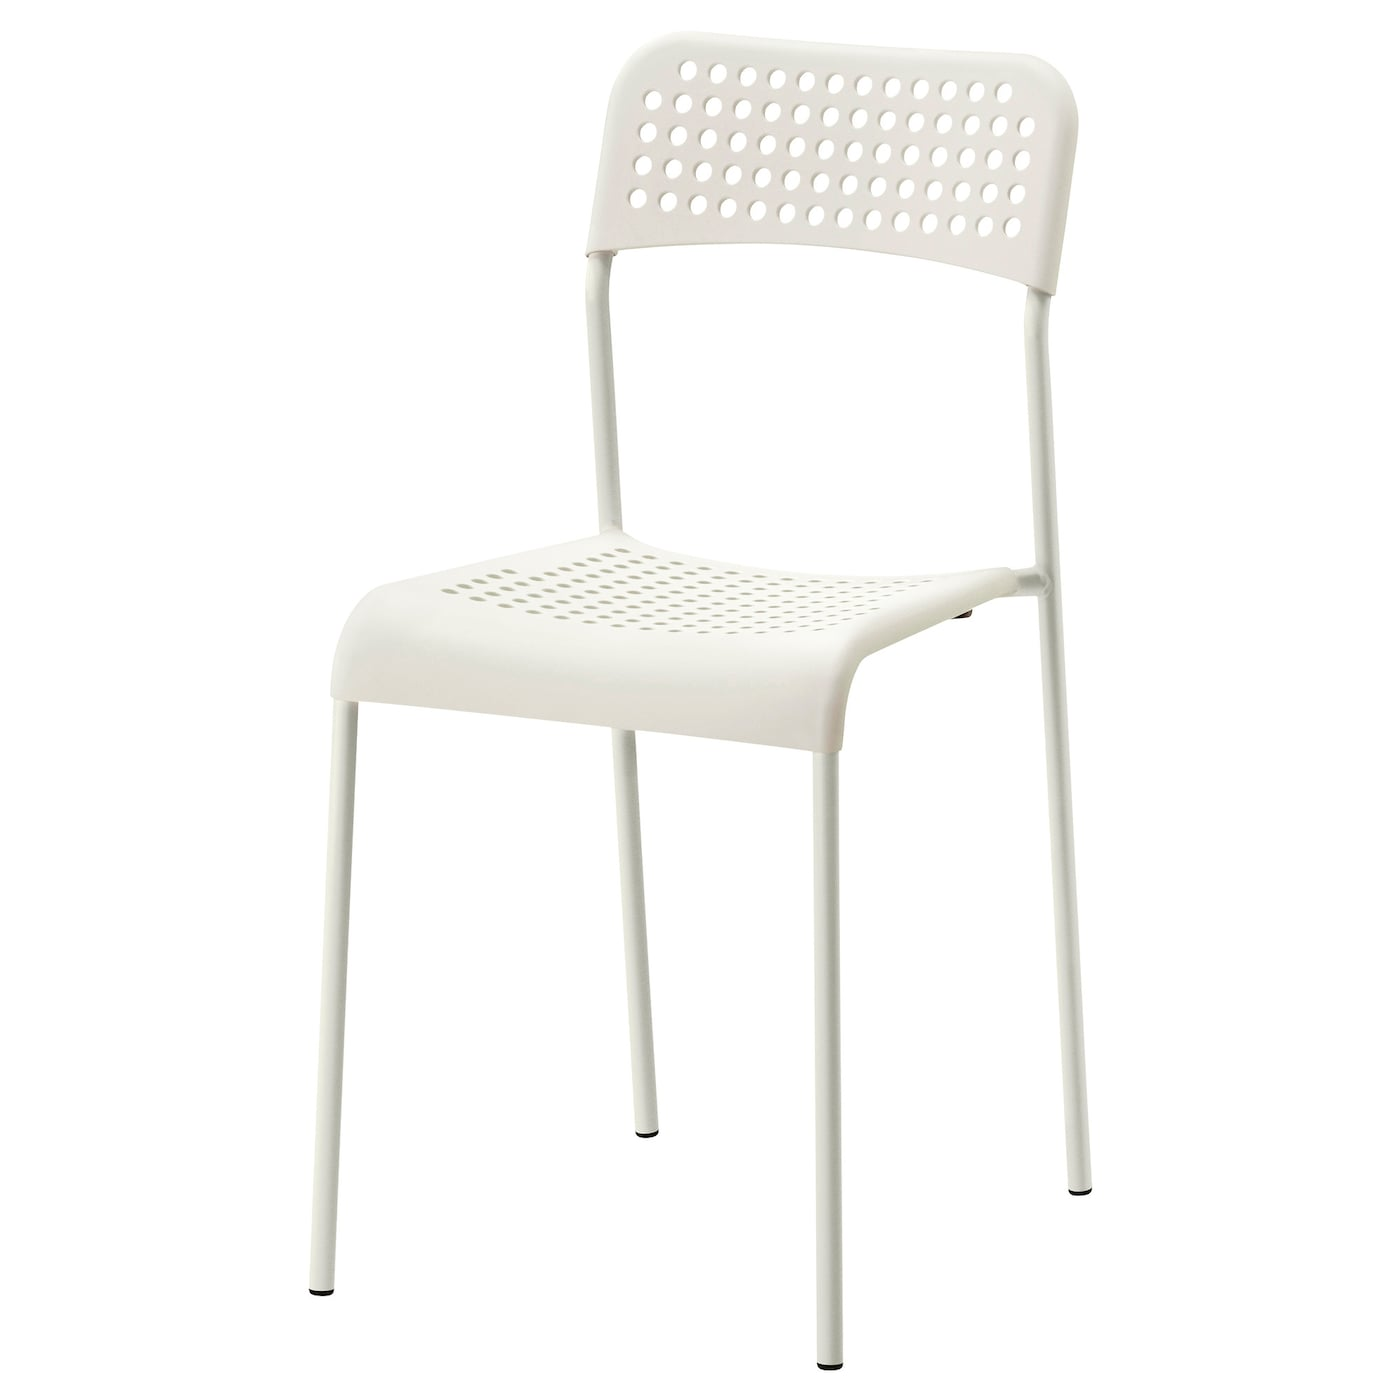 Dining chairs kitchen chairs ikea - Sedie plastica ikea ...